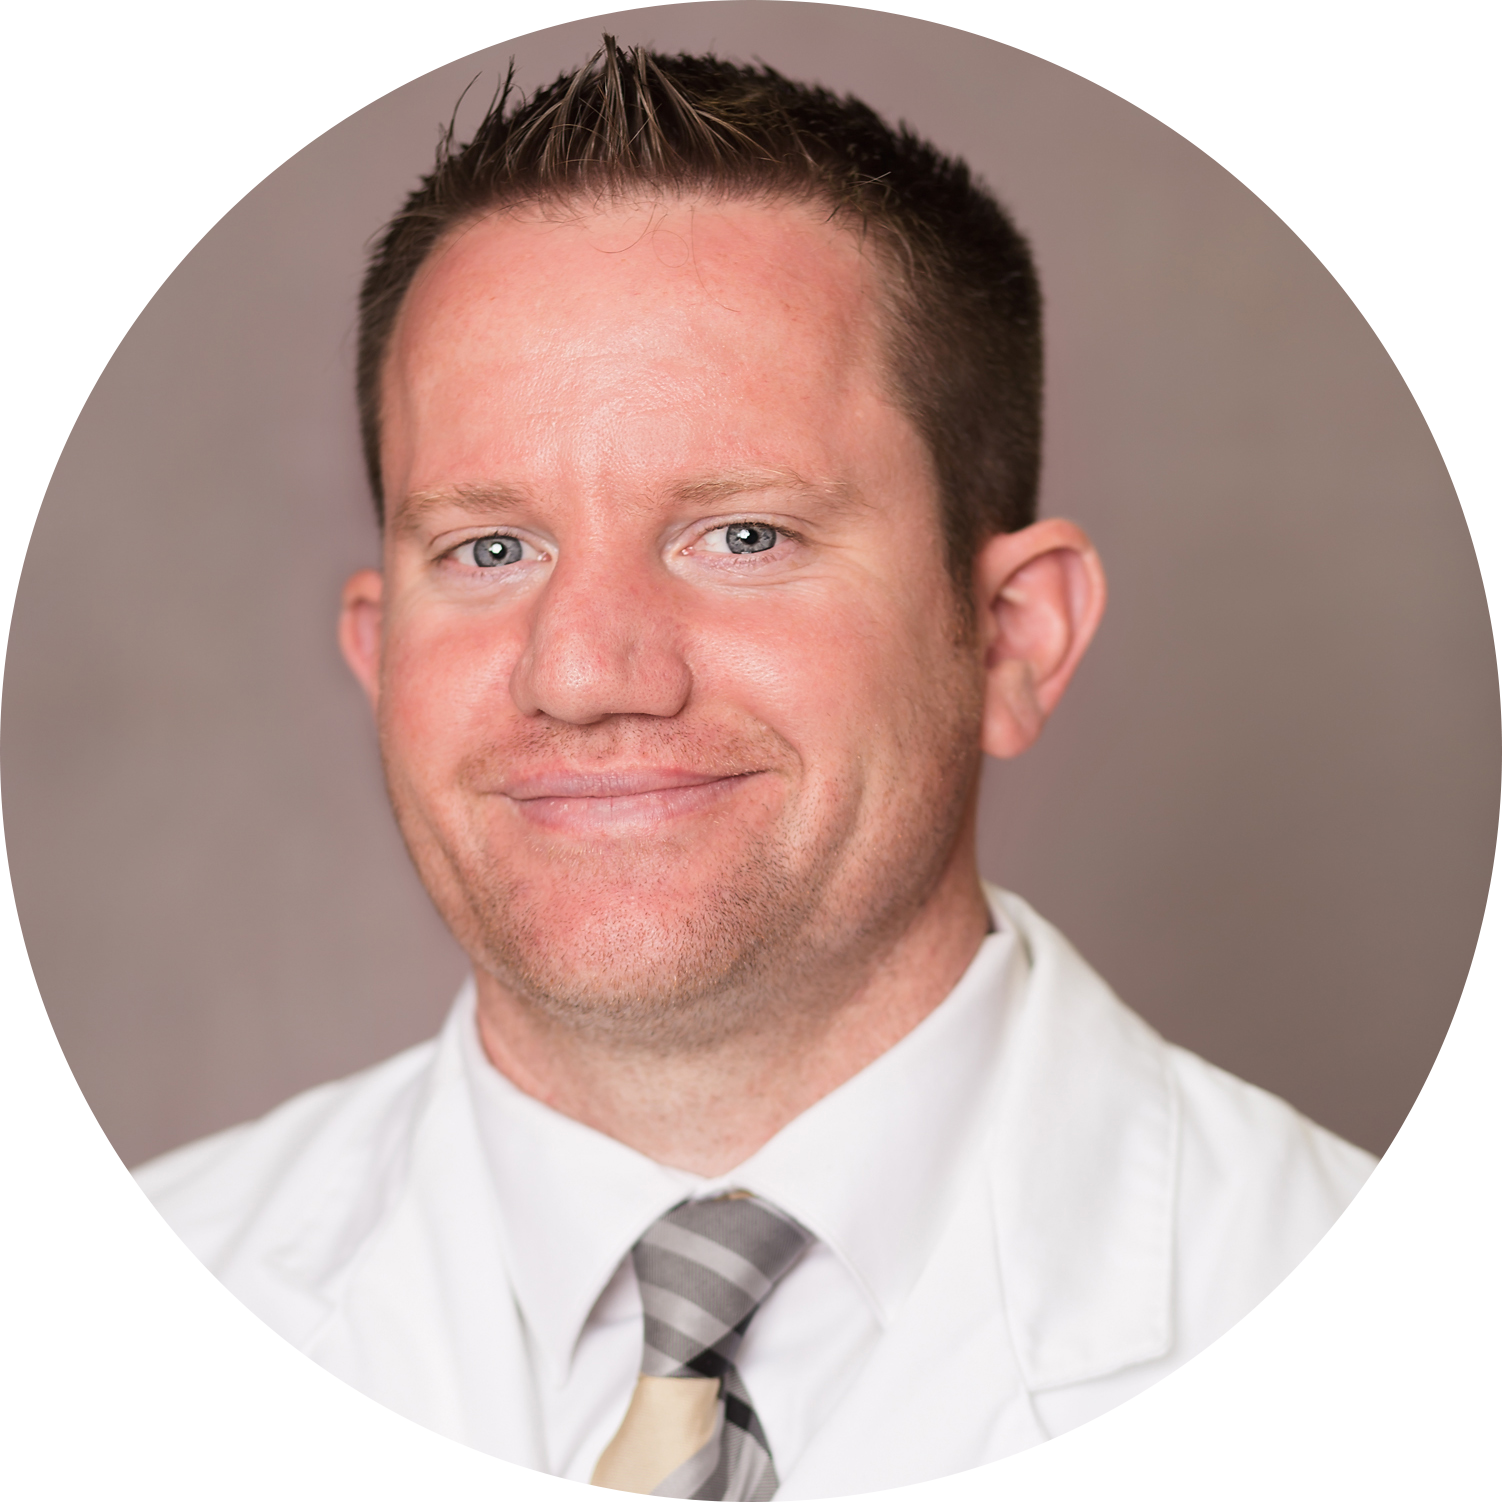 Dr. Richard England, MD - Family Physician